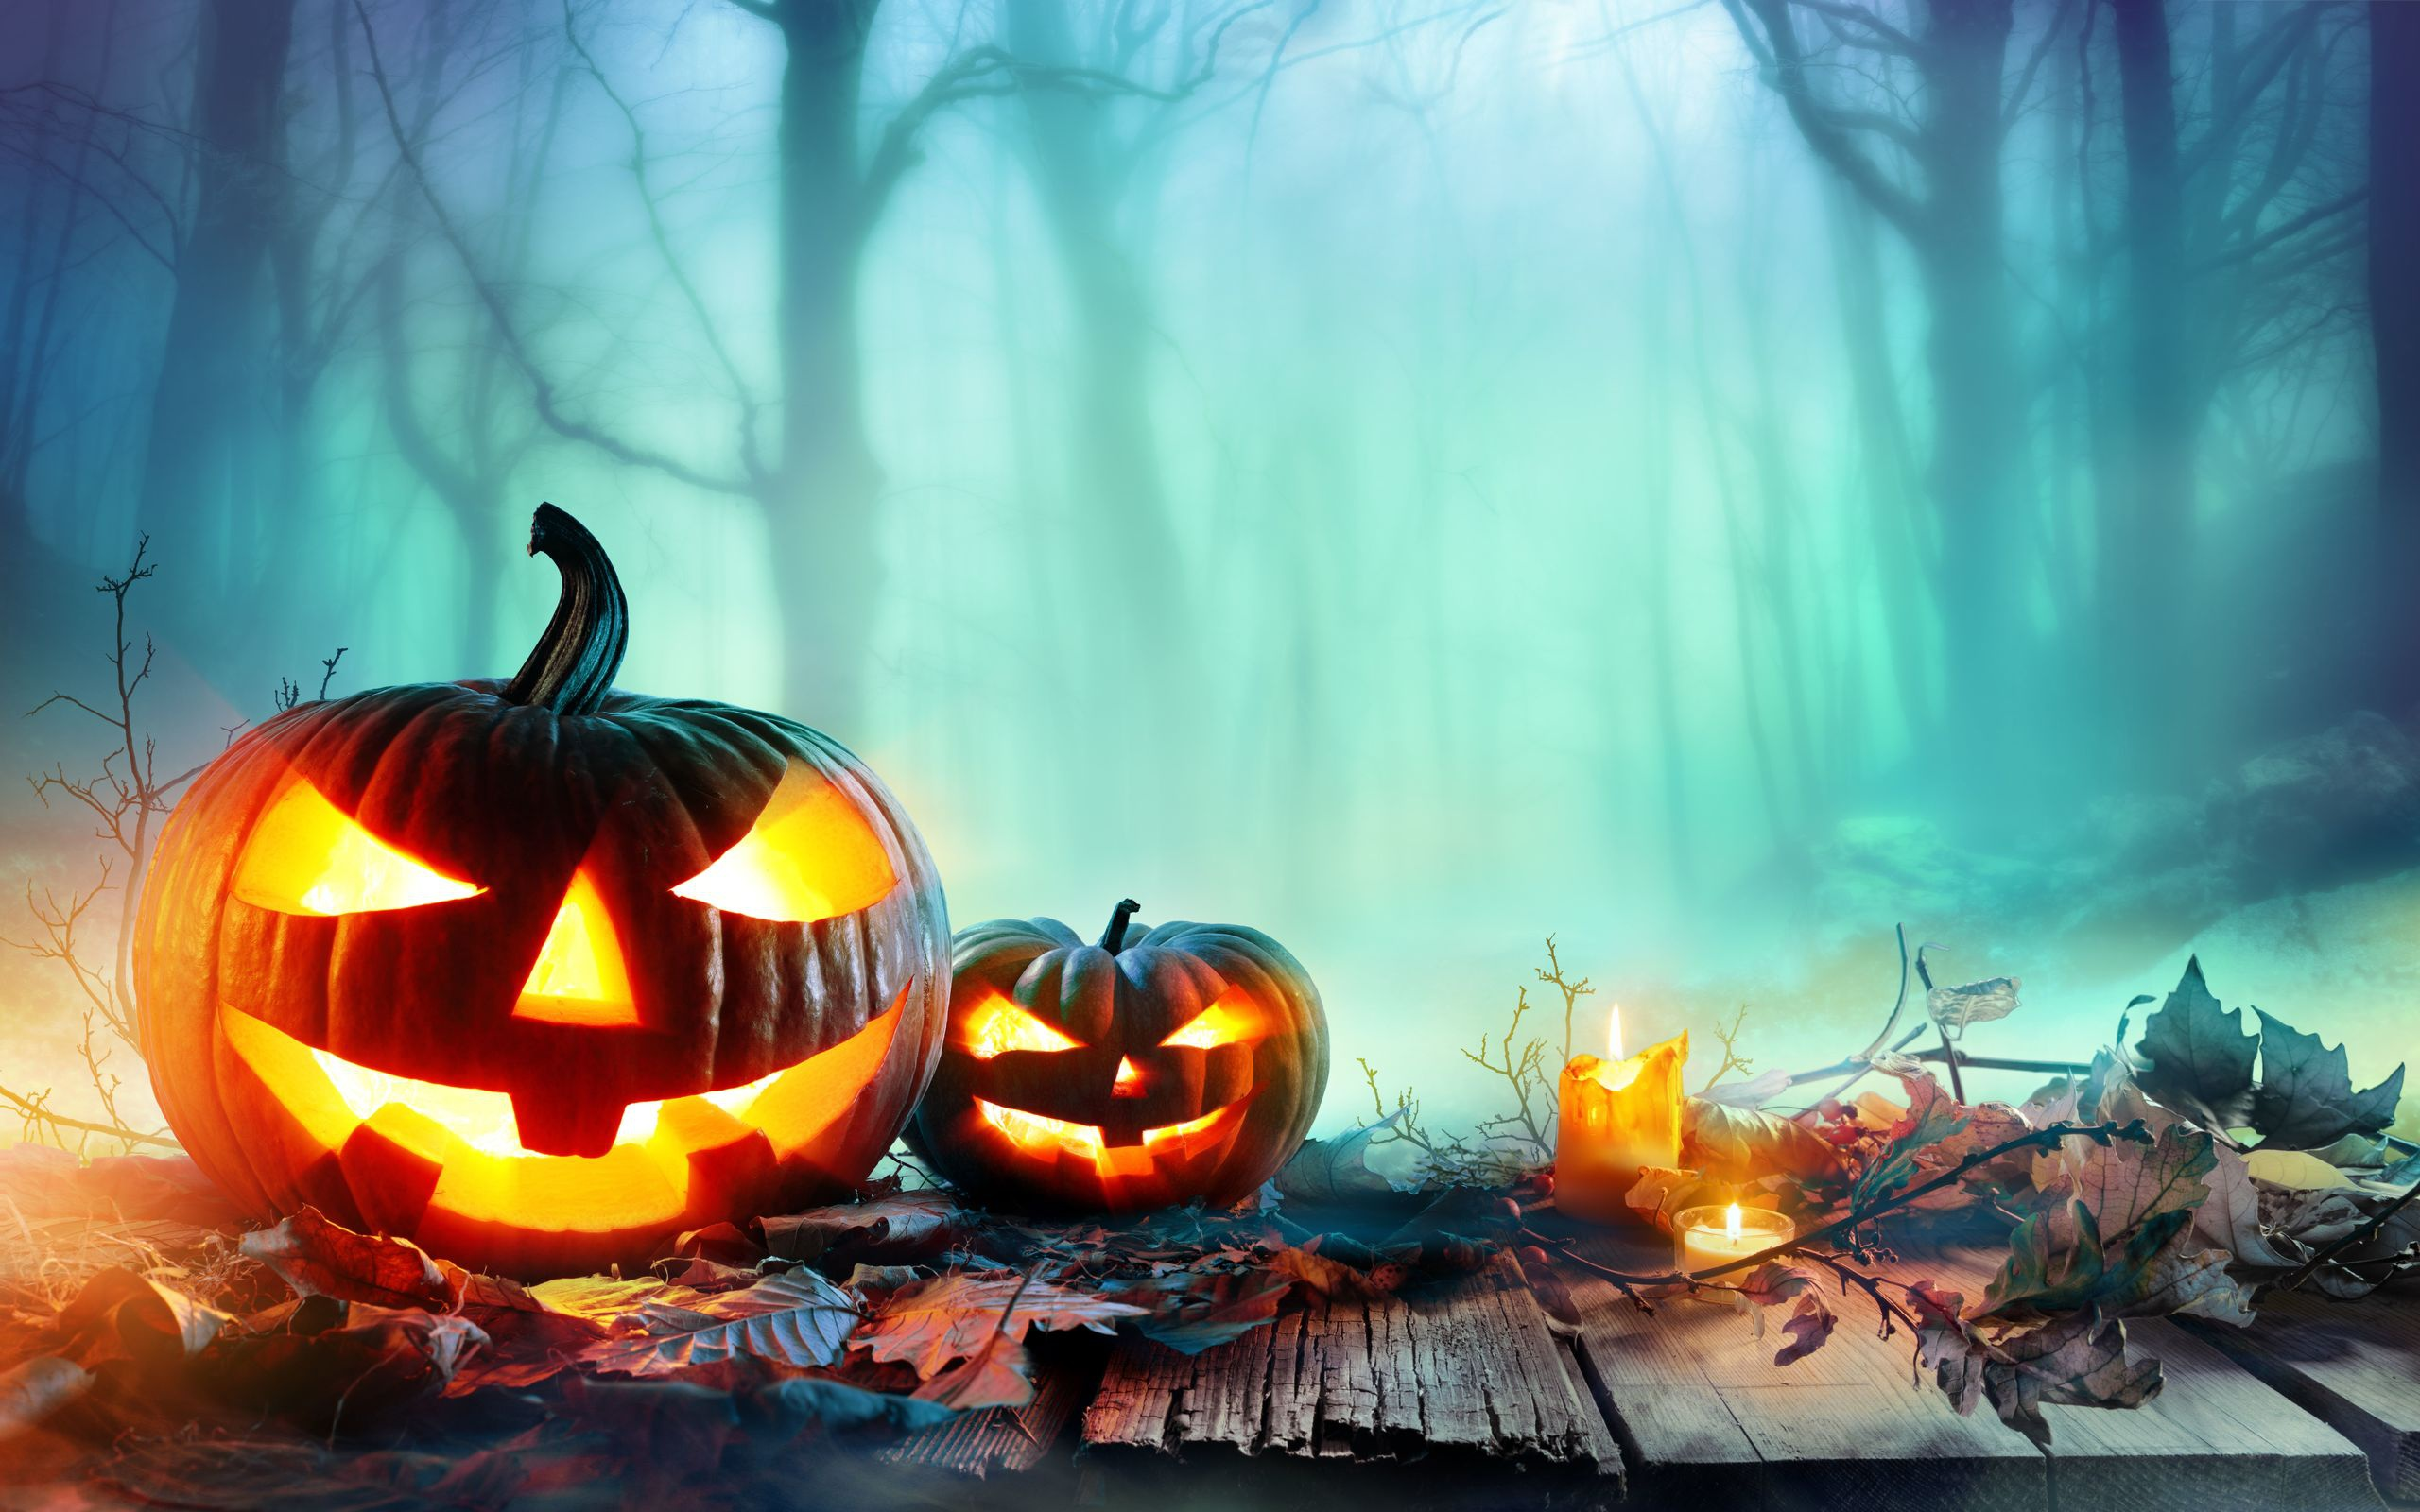 Halloween Hd Wallpaper Background Image 2560x1600 Id 959830